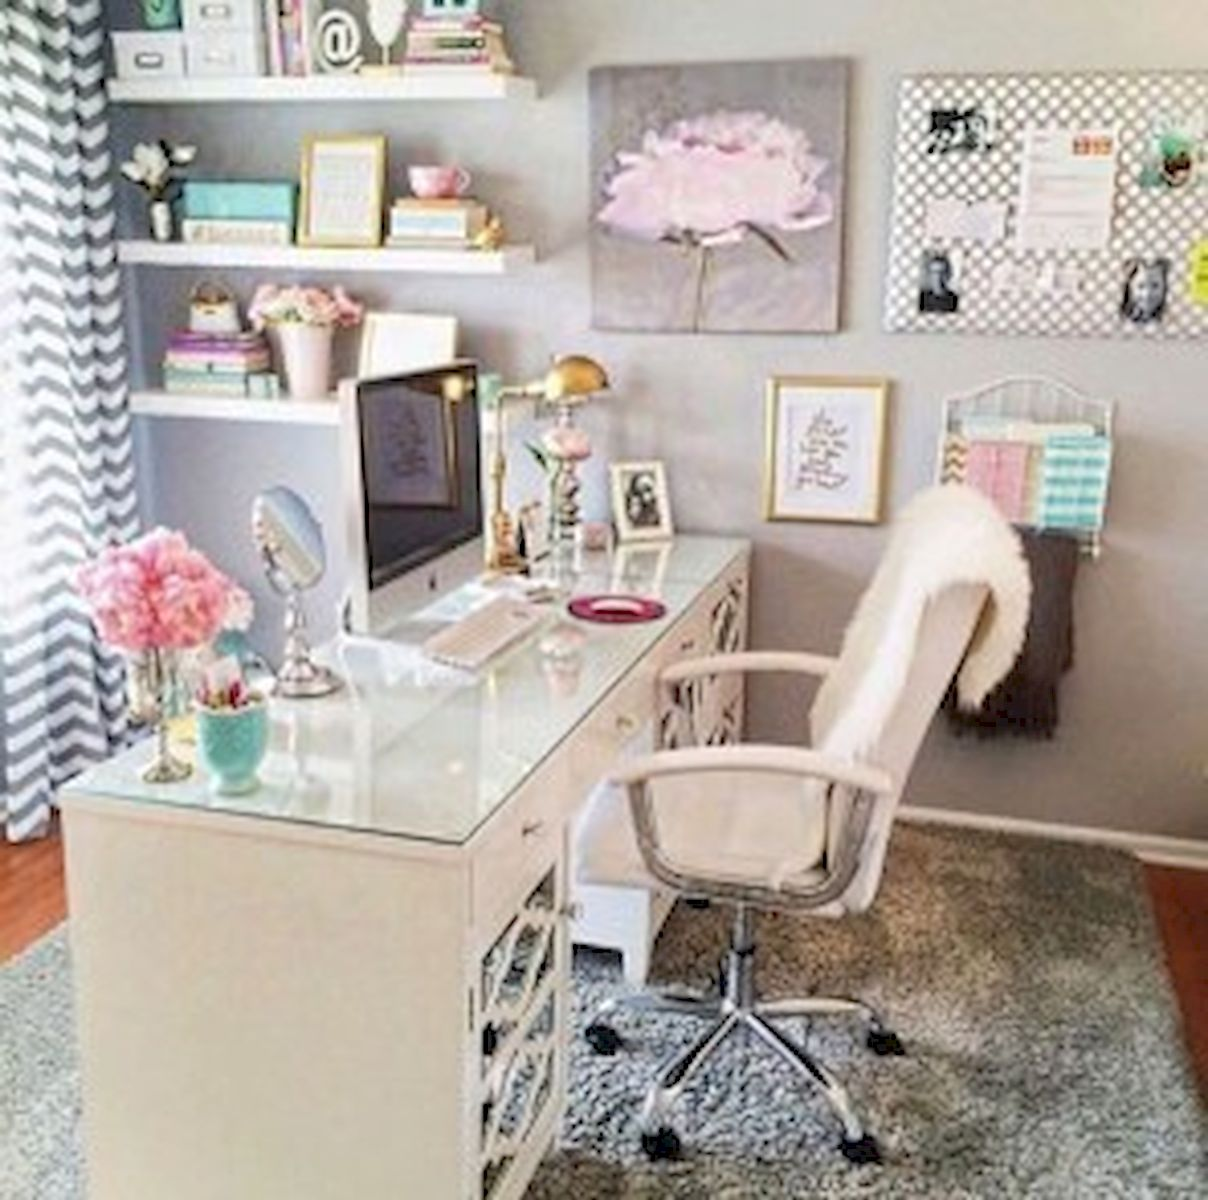 45 Adorable Home Office Decoration Ideas (22)